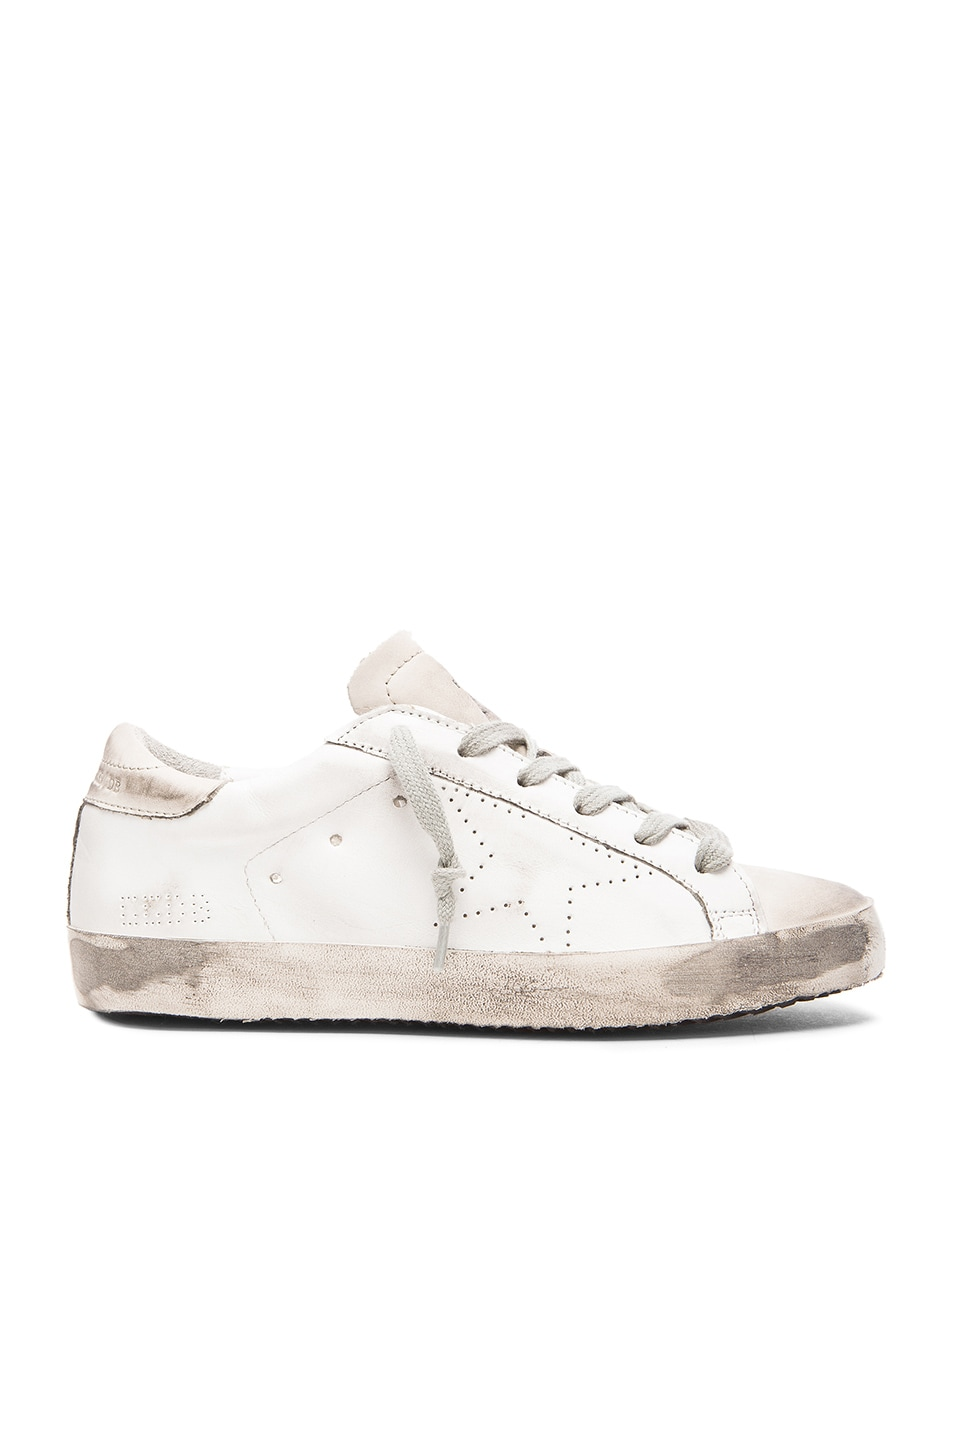 low priced f5fd8 bb34f Image 1 of Golden Goose Superstar Low Top Leather Sneakers in A5